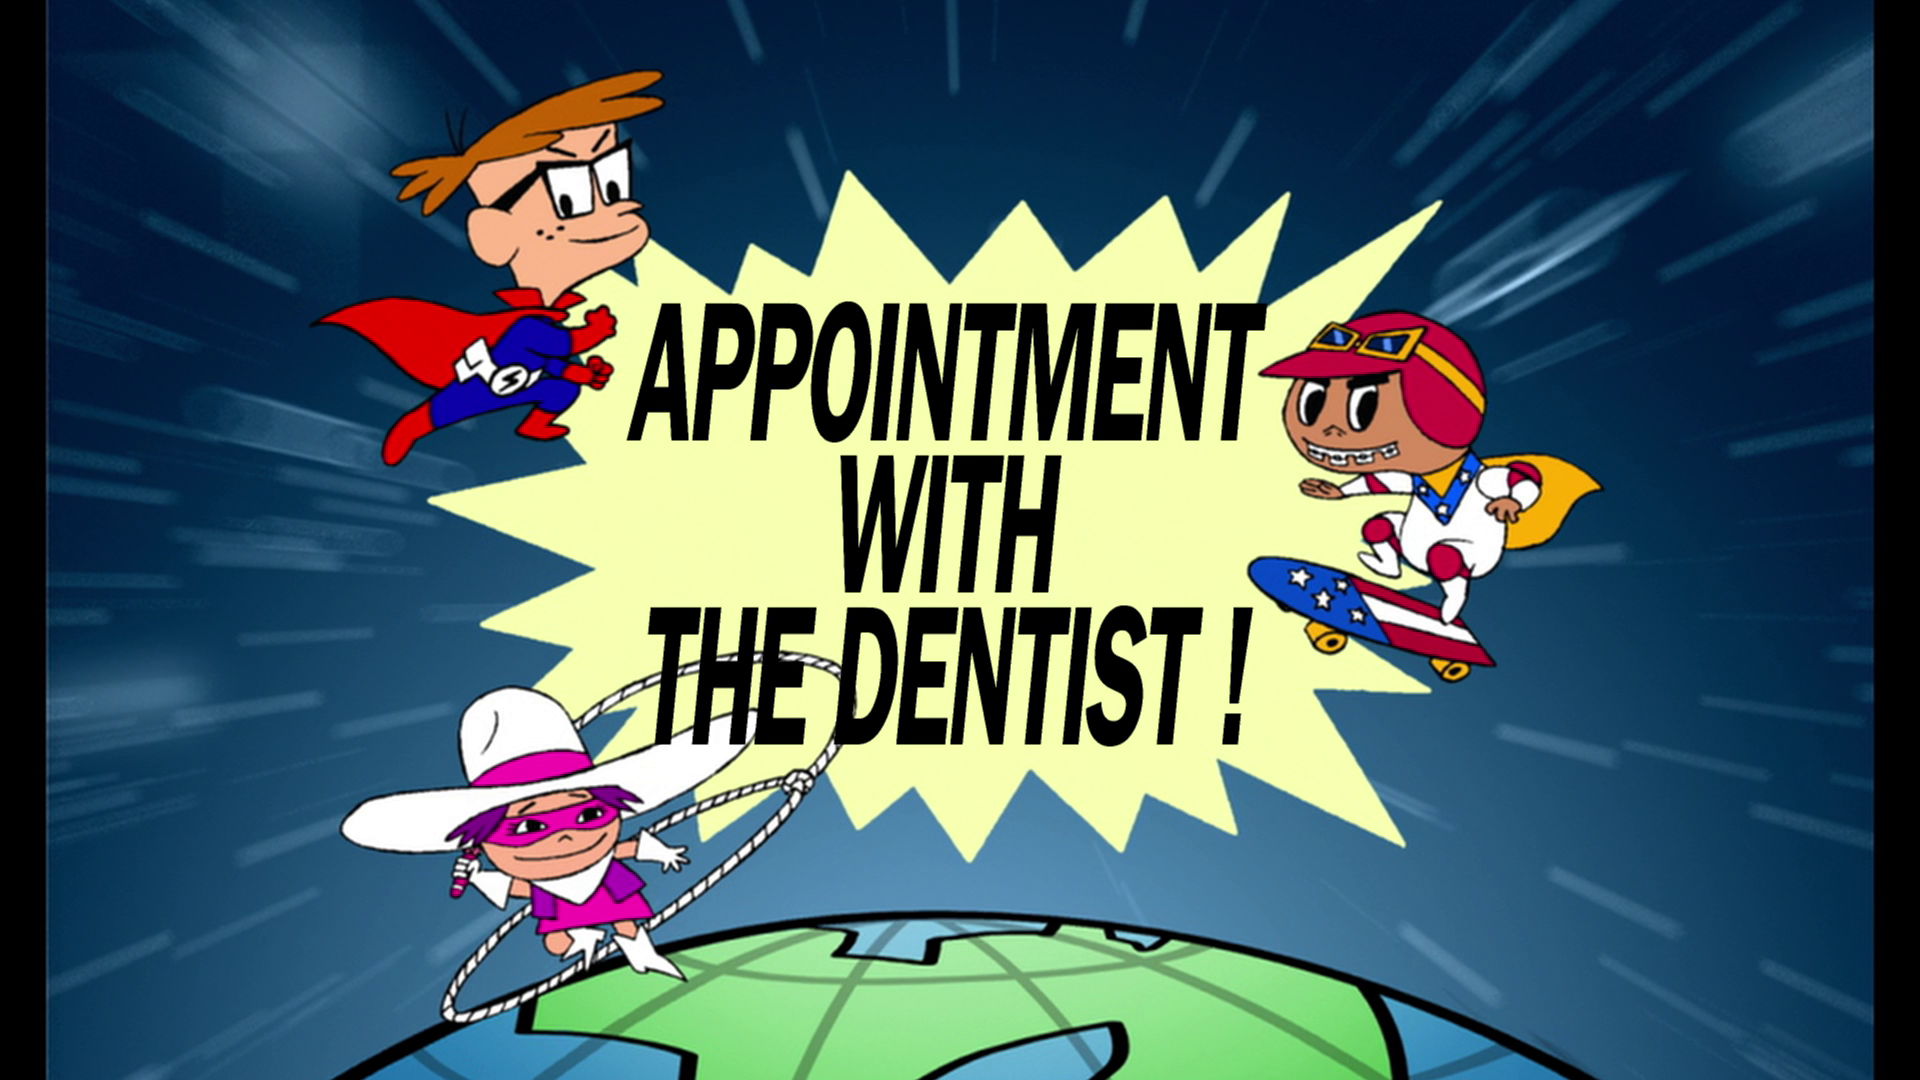 Appointment with the Dentist!